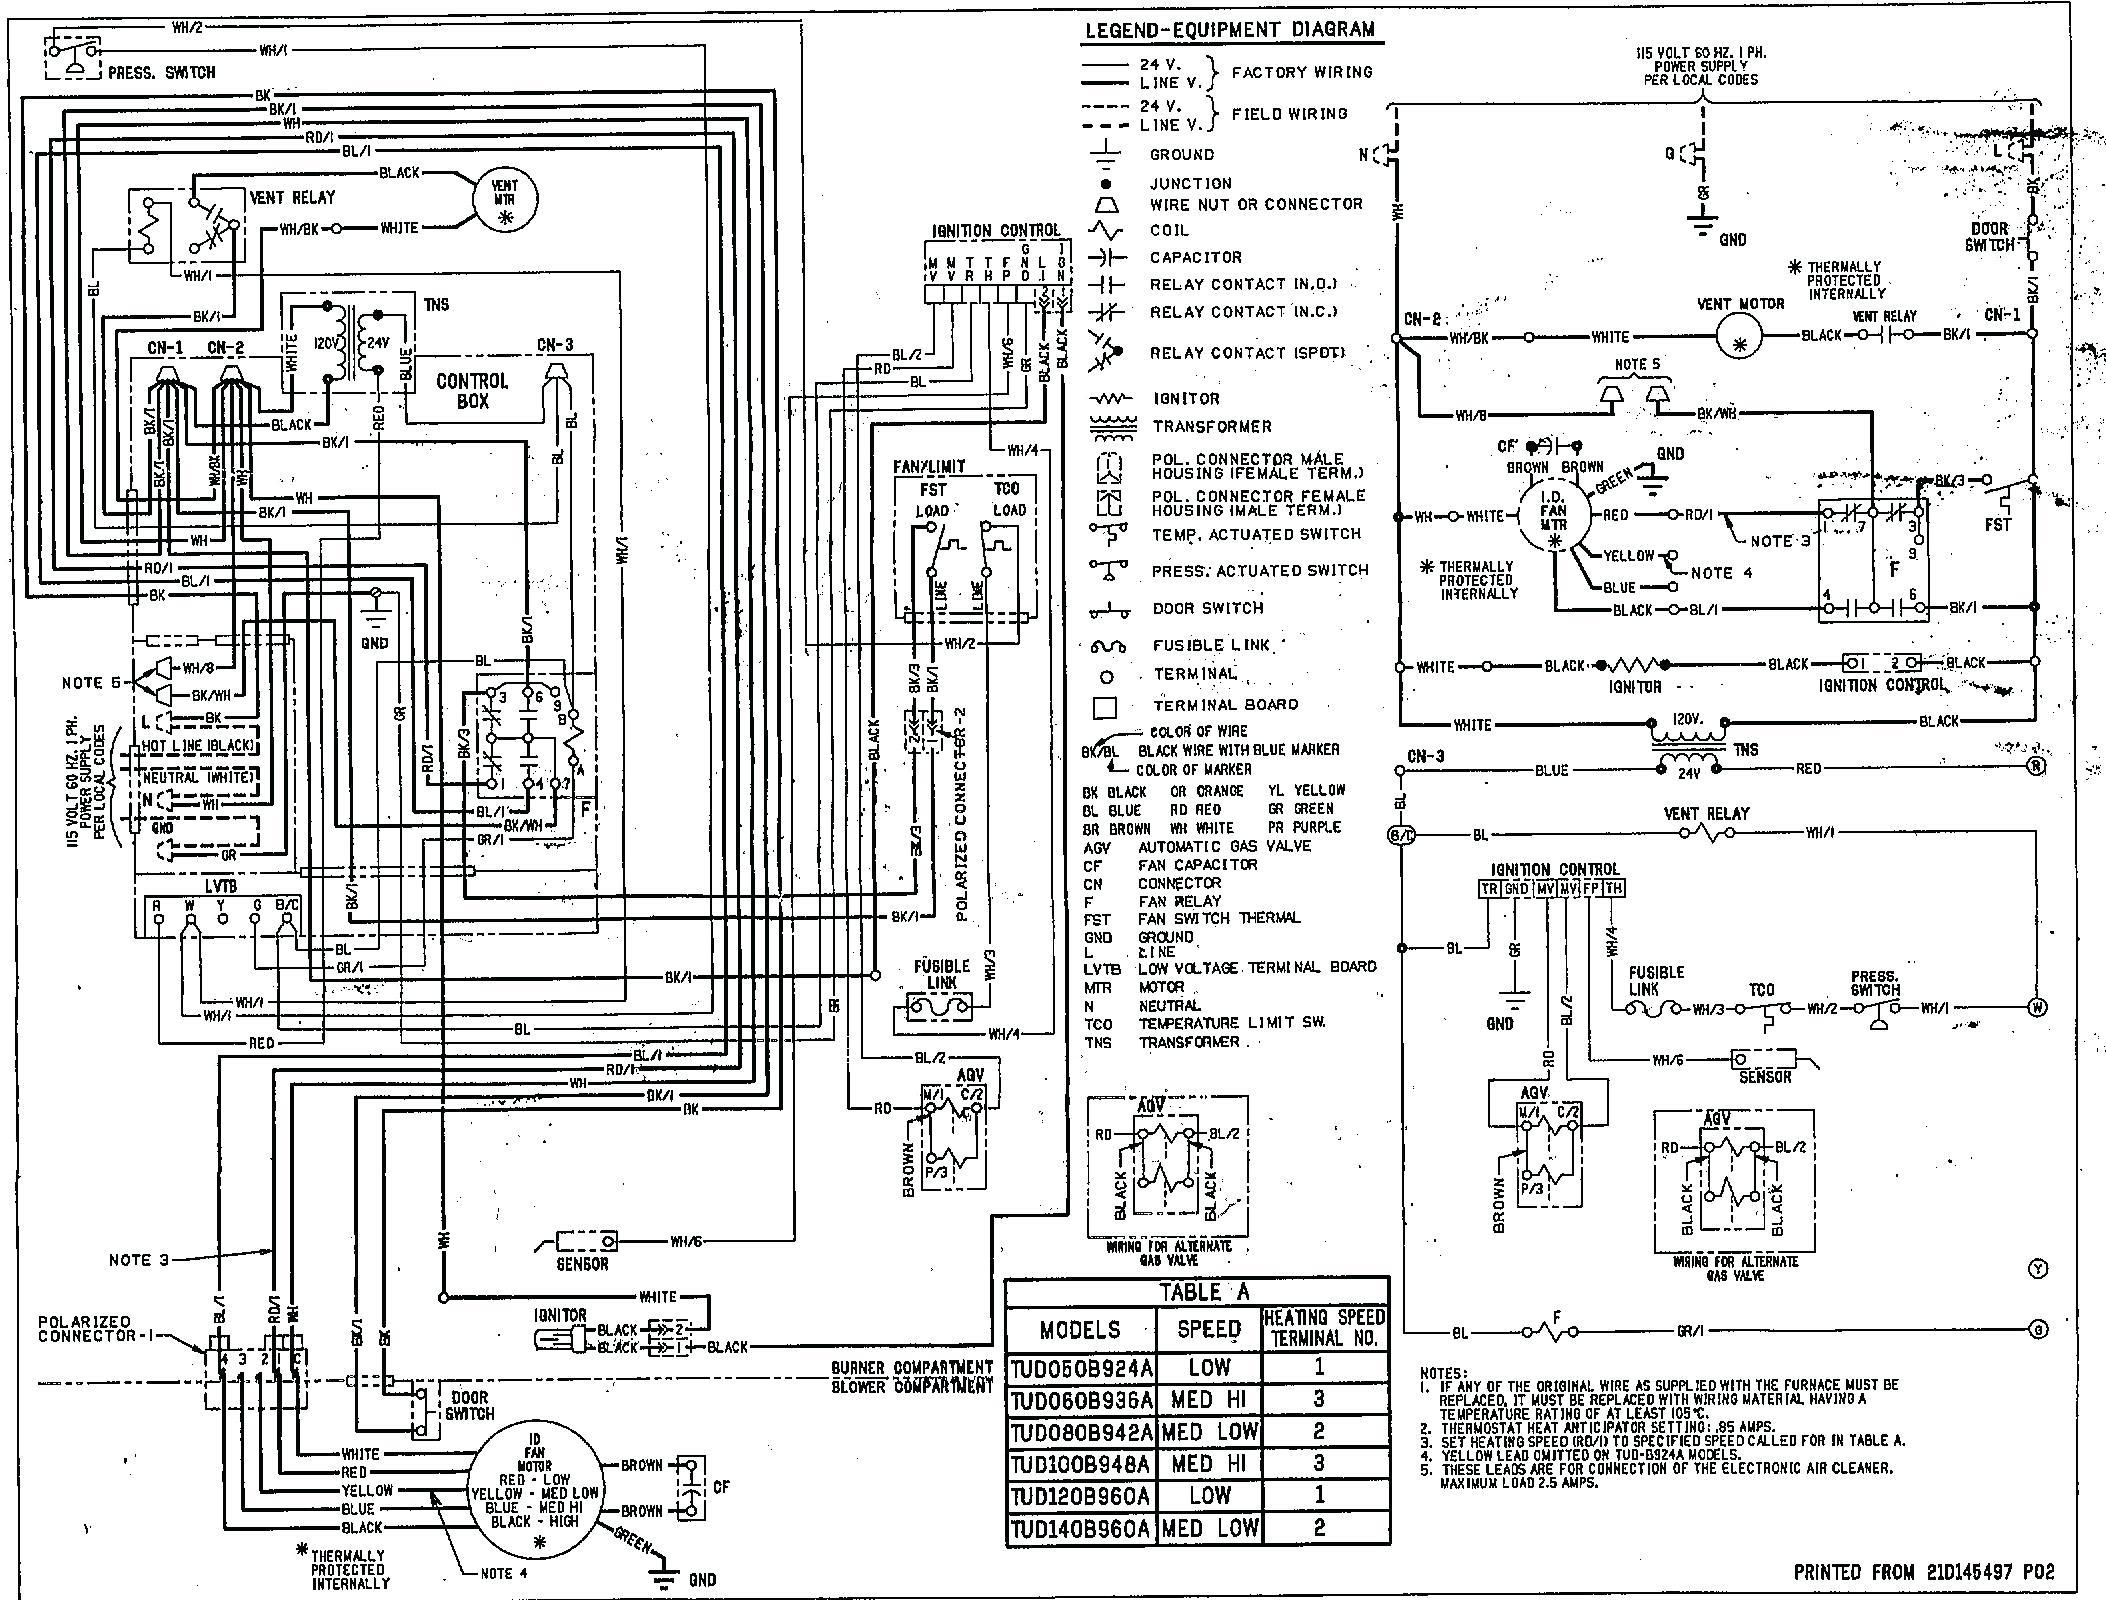 furnace control board wiring diagram Download-Wireless Focuspro Thermostat Trane Xl80 Furnace Wiring Diagram I Have Found The Control Box Circuit Board Lennox To Older Gas At Trane Wiring Diagram 20-l